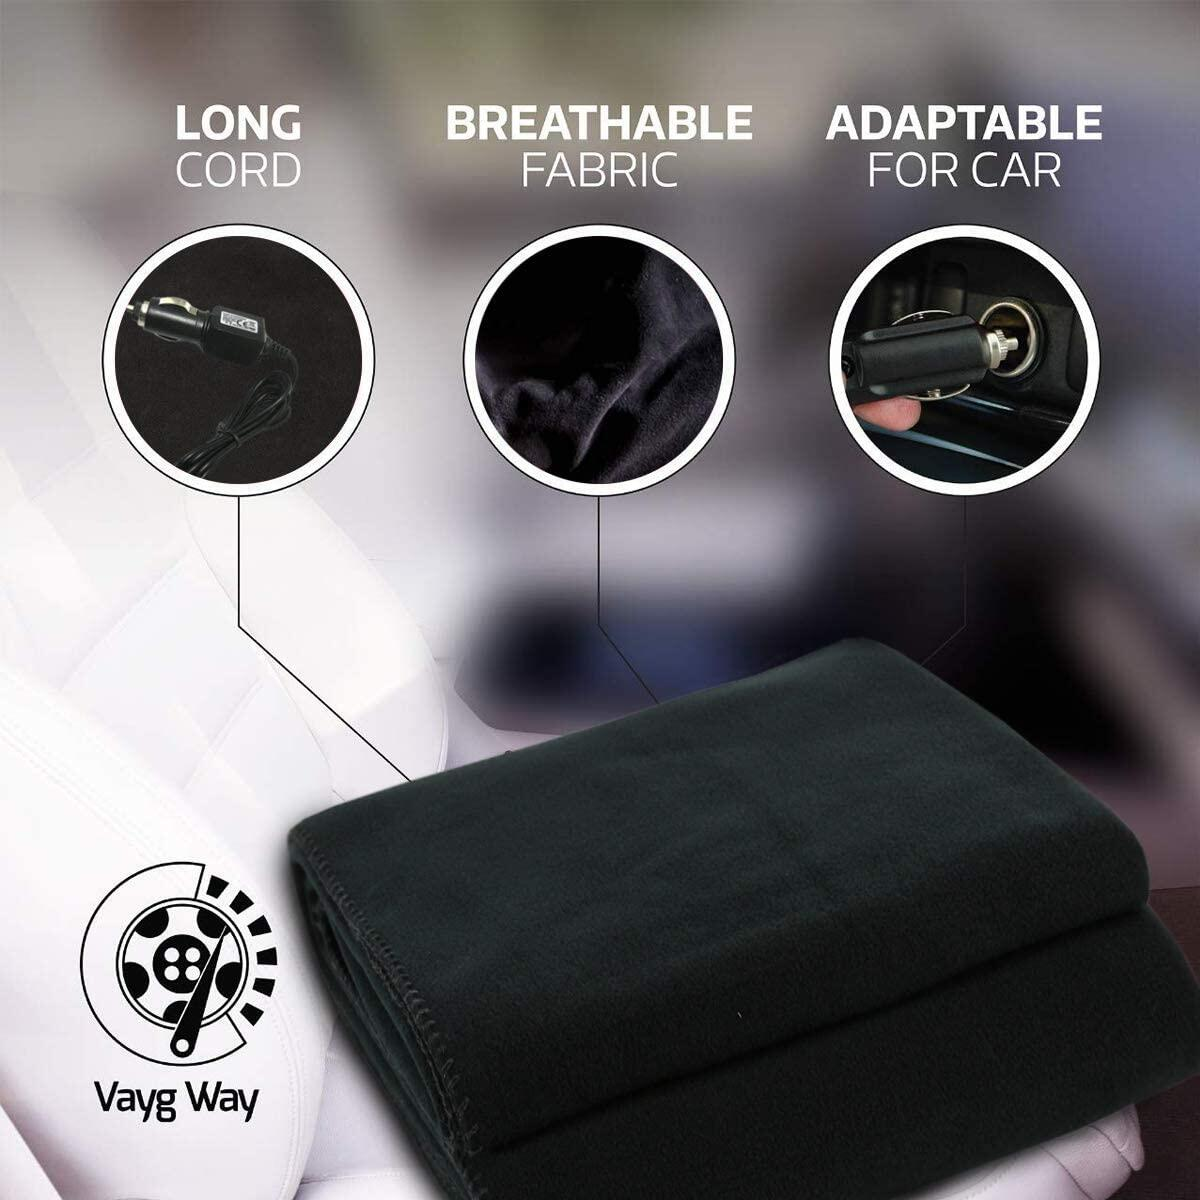 VaygWay Electric Heated Car Blanket – 12 Volt Fleece Travel Blanket – Throw for Car Truck RVs – Heating Blanket for Cold Weathers – Portable 12V Heated Throw Blanket